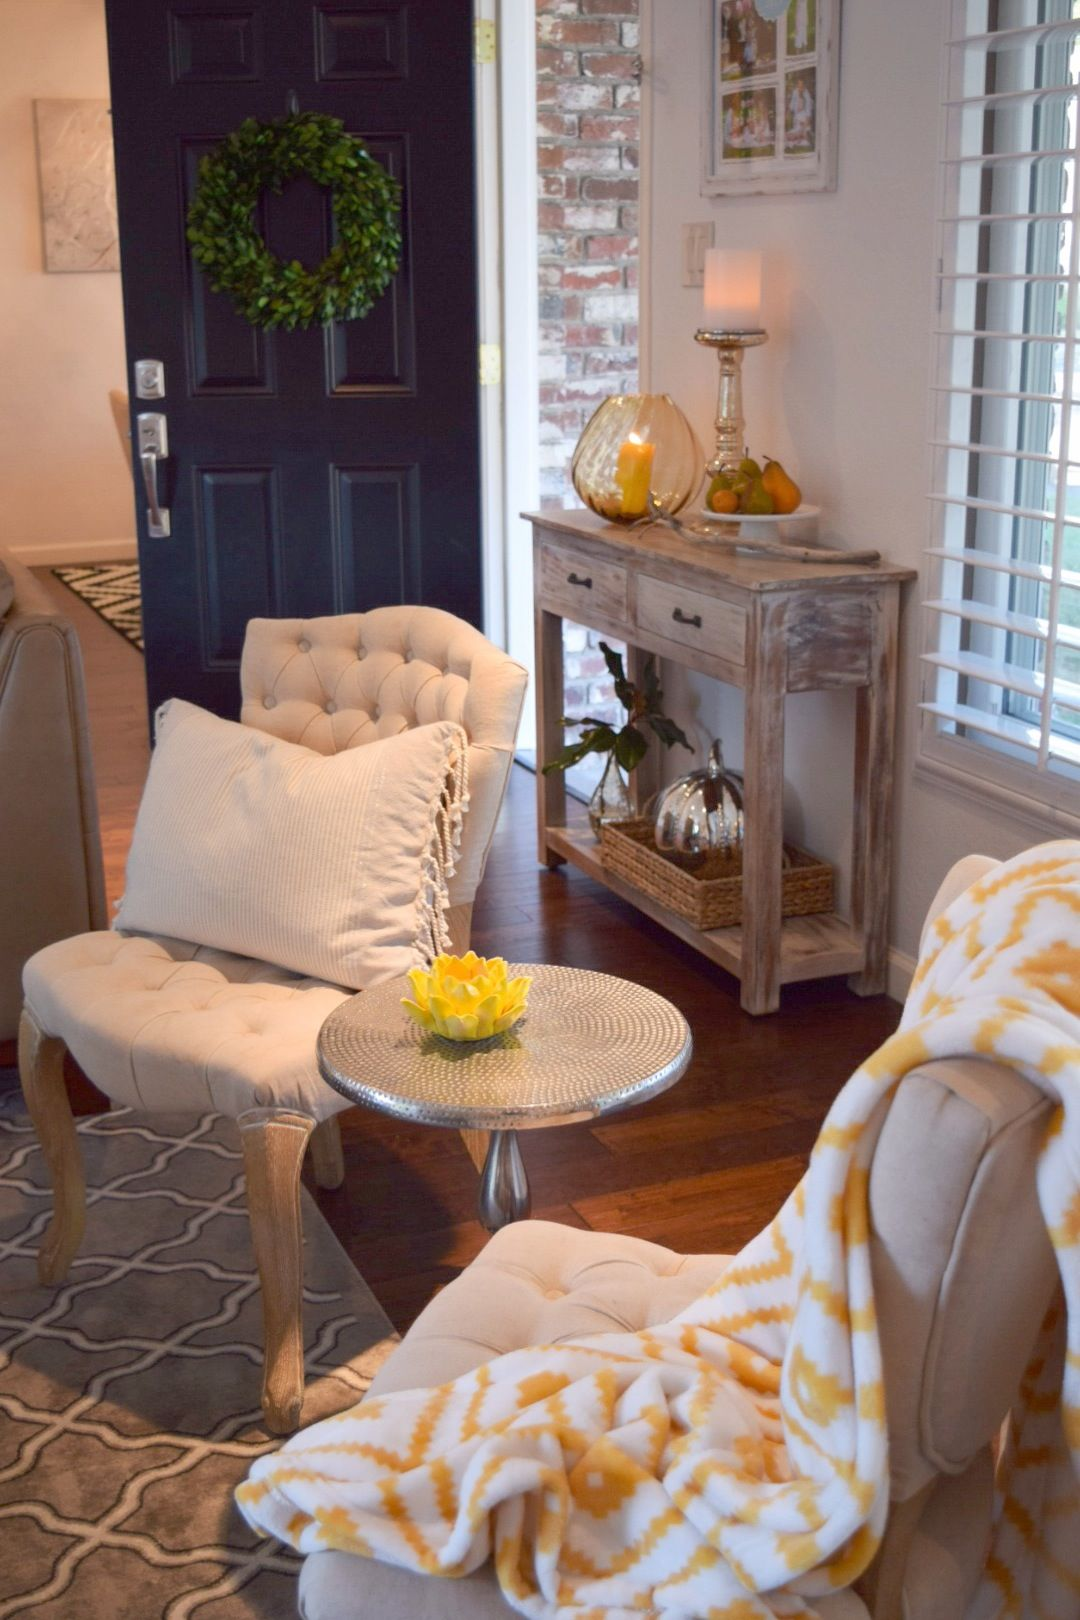 Living Room Update Ideas: Update Your Home Decor For Autumn With Decorative